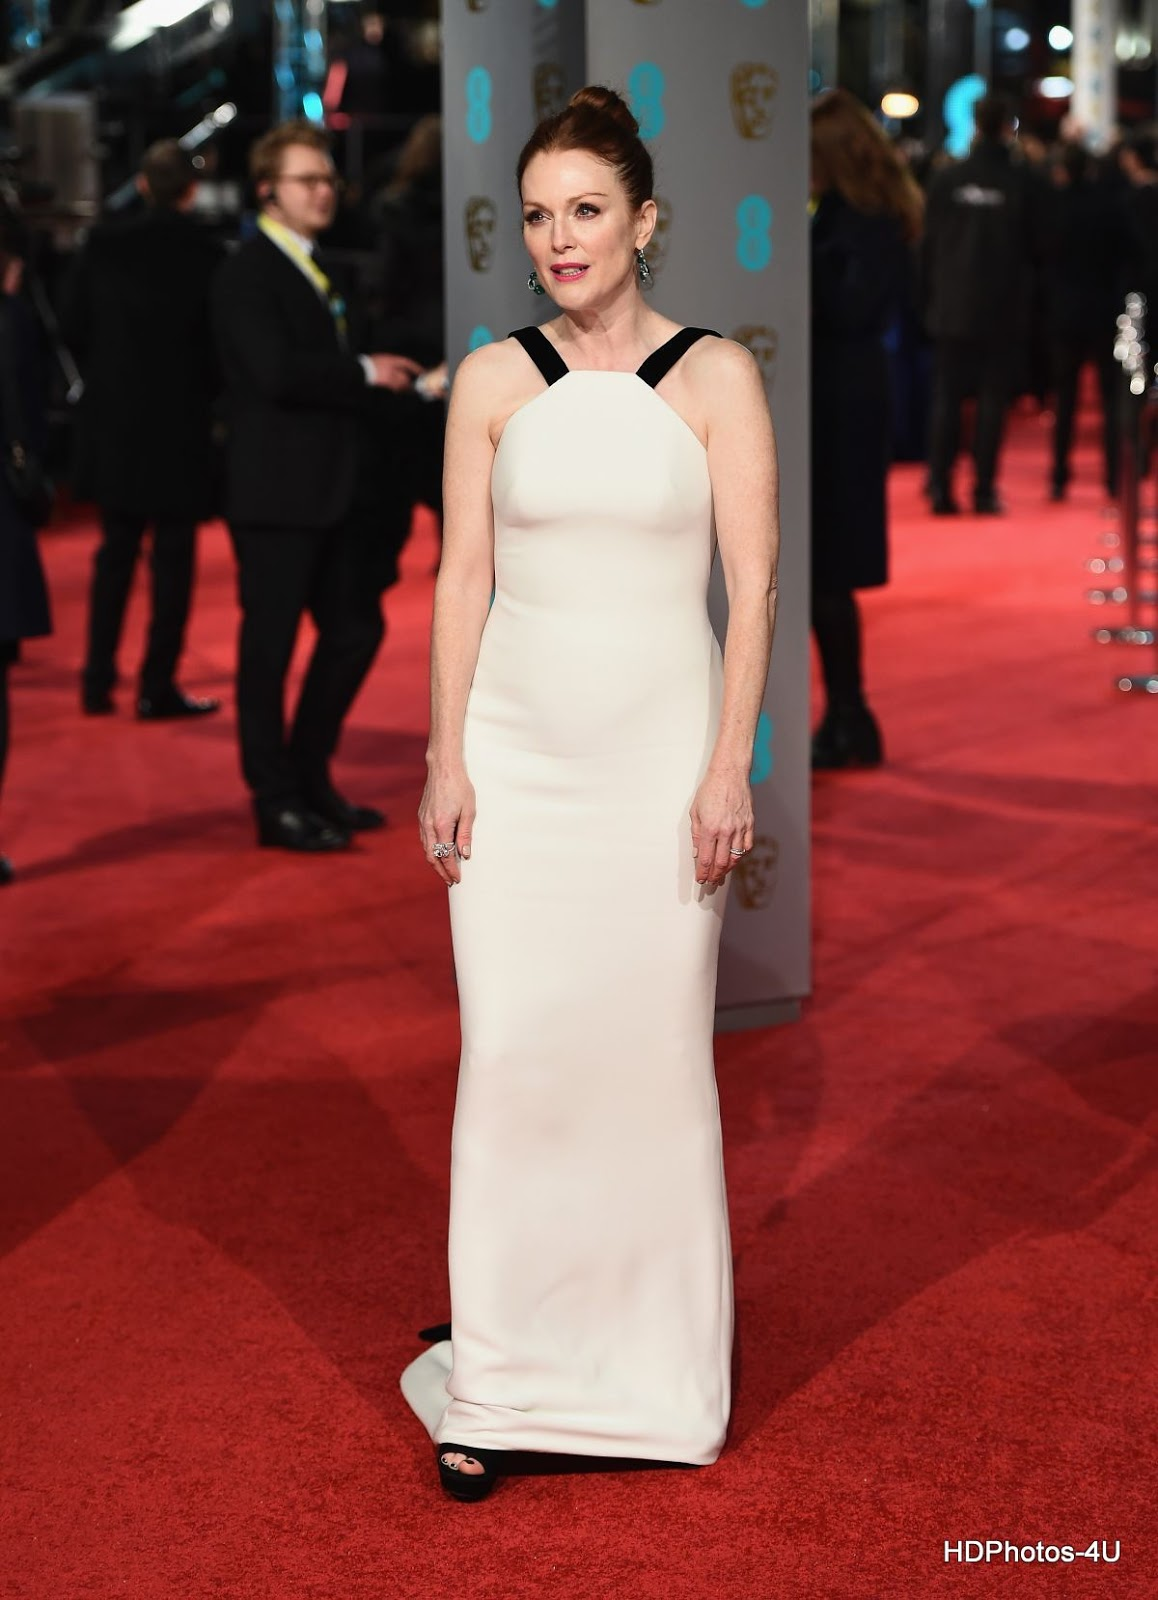 HQ Photos of Julianne Moore at British Academy of Film and Television Arts Awards 2016 in London